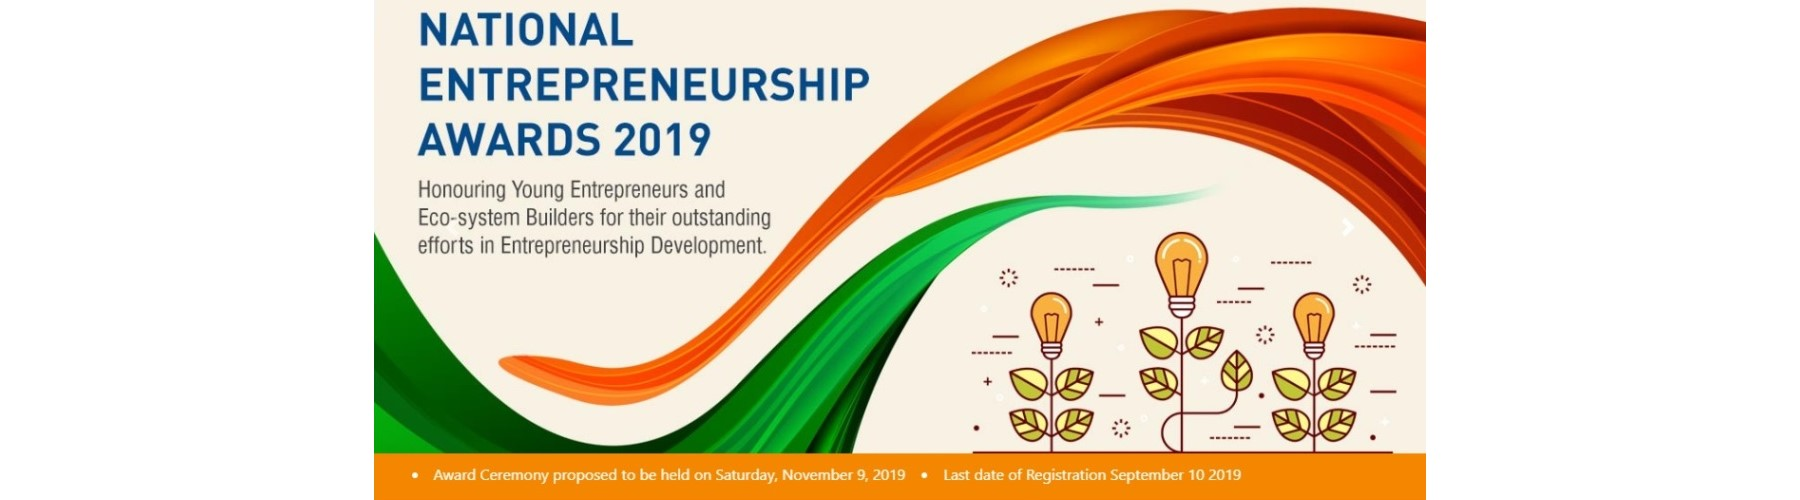 National Entrepreneurship Award 2019